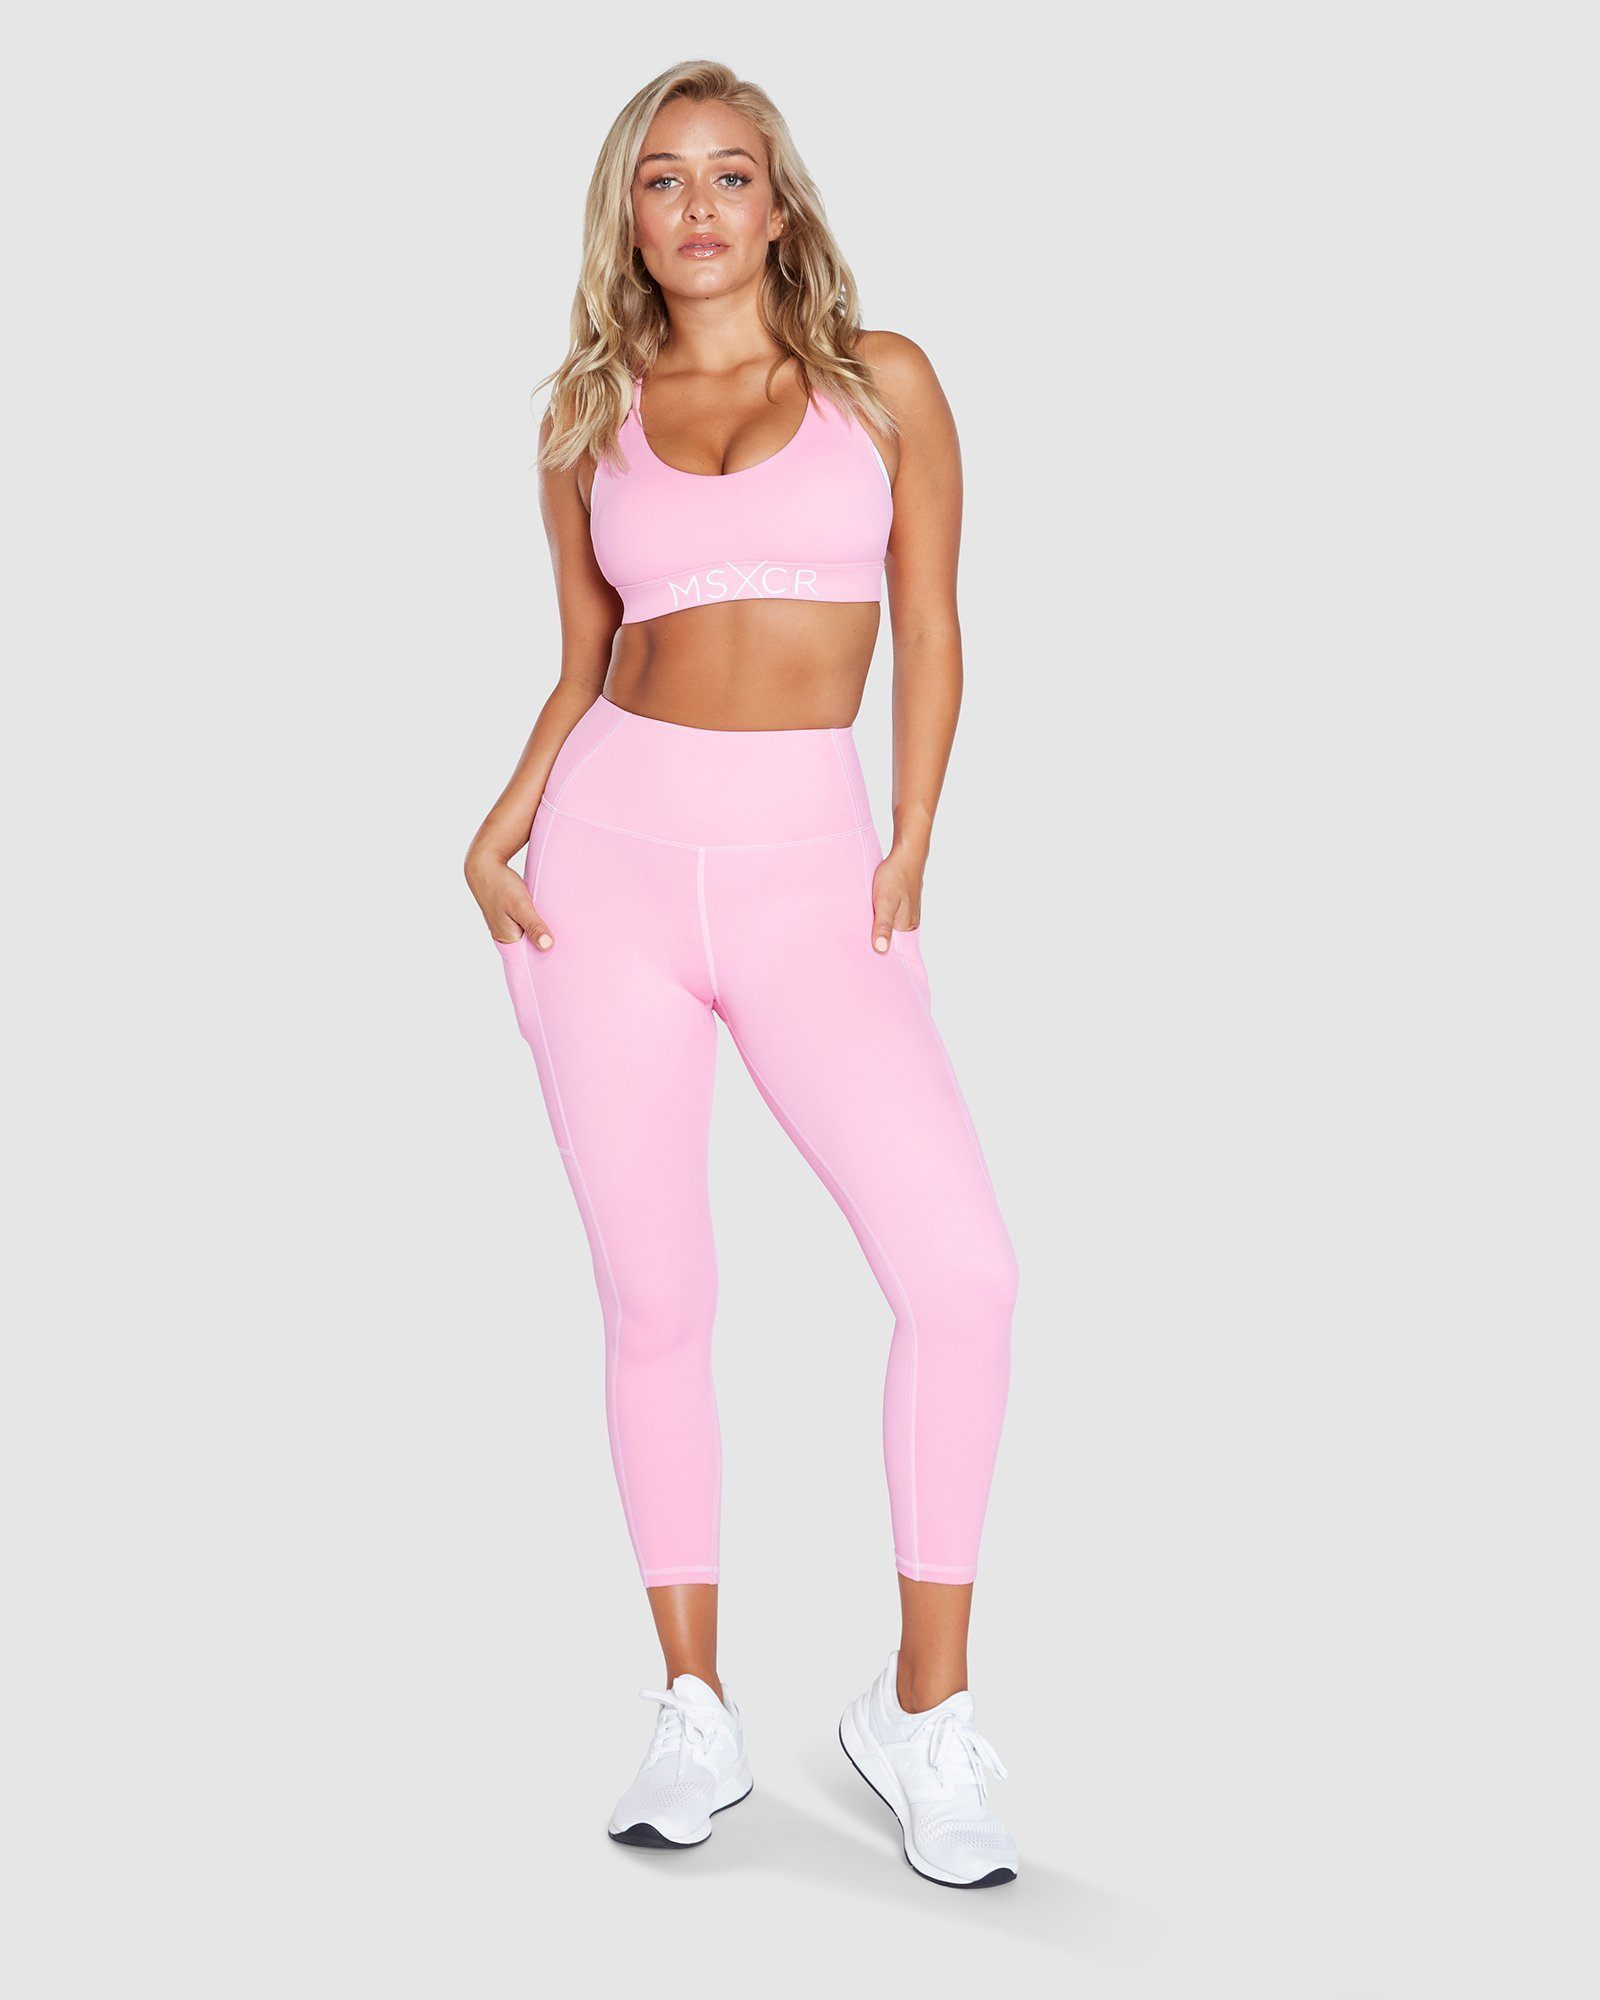 Muscle Republic Elevate 7/8 Leggings - Pink